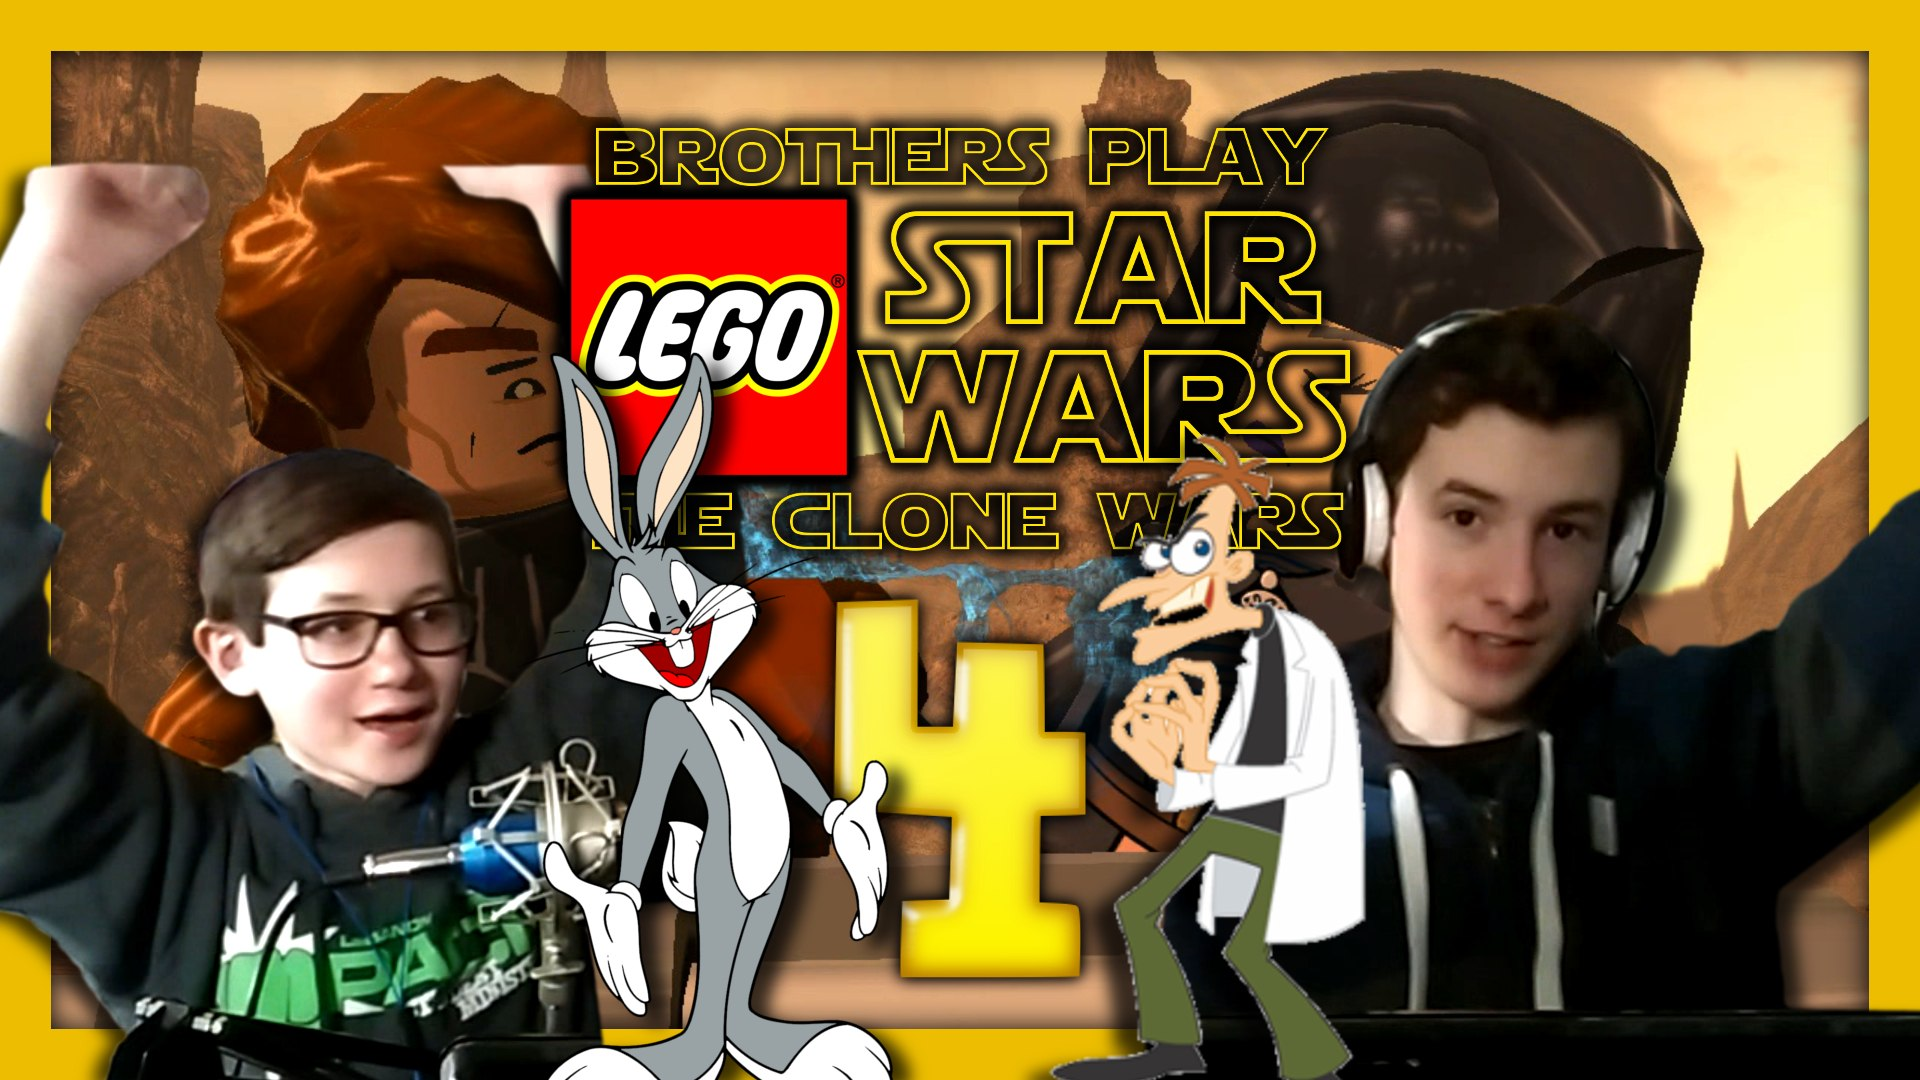 'Weapons Factory' Brothers Play LEGO Star Wars III: The Clone Wars Episode 4